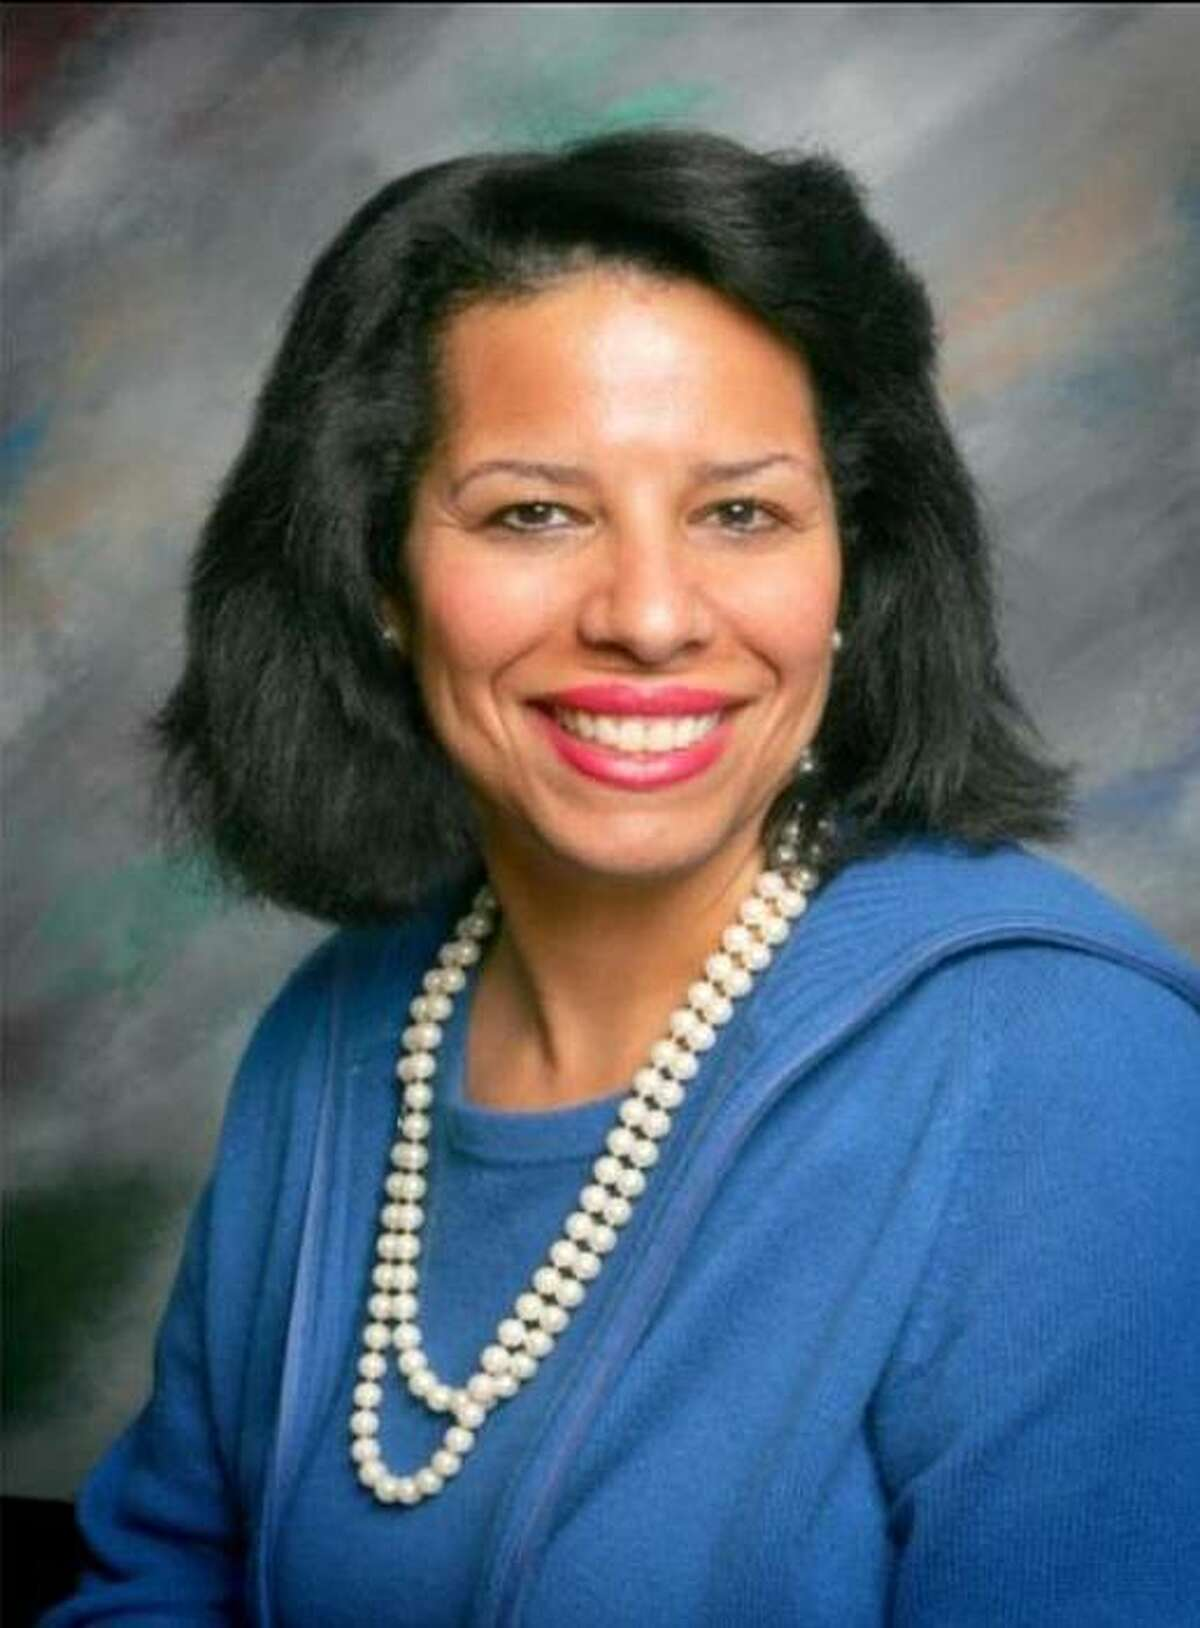 The Honorable Teresa Cox has been appointed by the US Commerce Secretary Gary Locke and United States Trade Representative Ambassador Ron Kirk, to serve as a trade adviser to U.S. Department of Commerce.